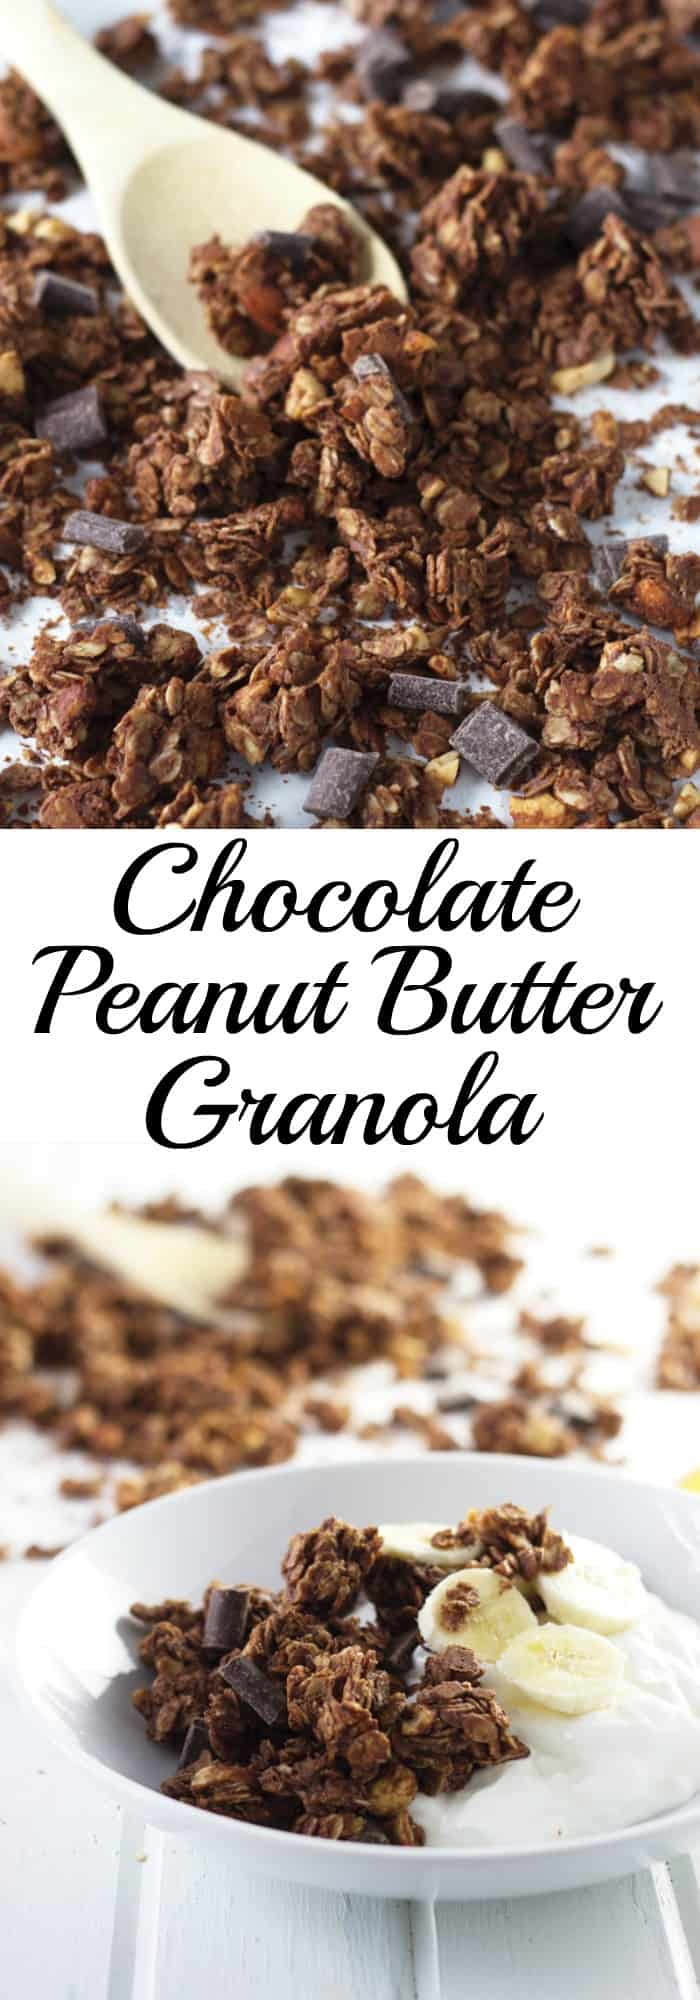 Chocolate Peanut Butter Granola that is super easy to make, great for snacking and it makes huge clusters!! | www.countrysidecravings.com